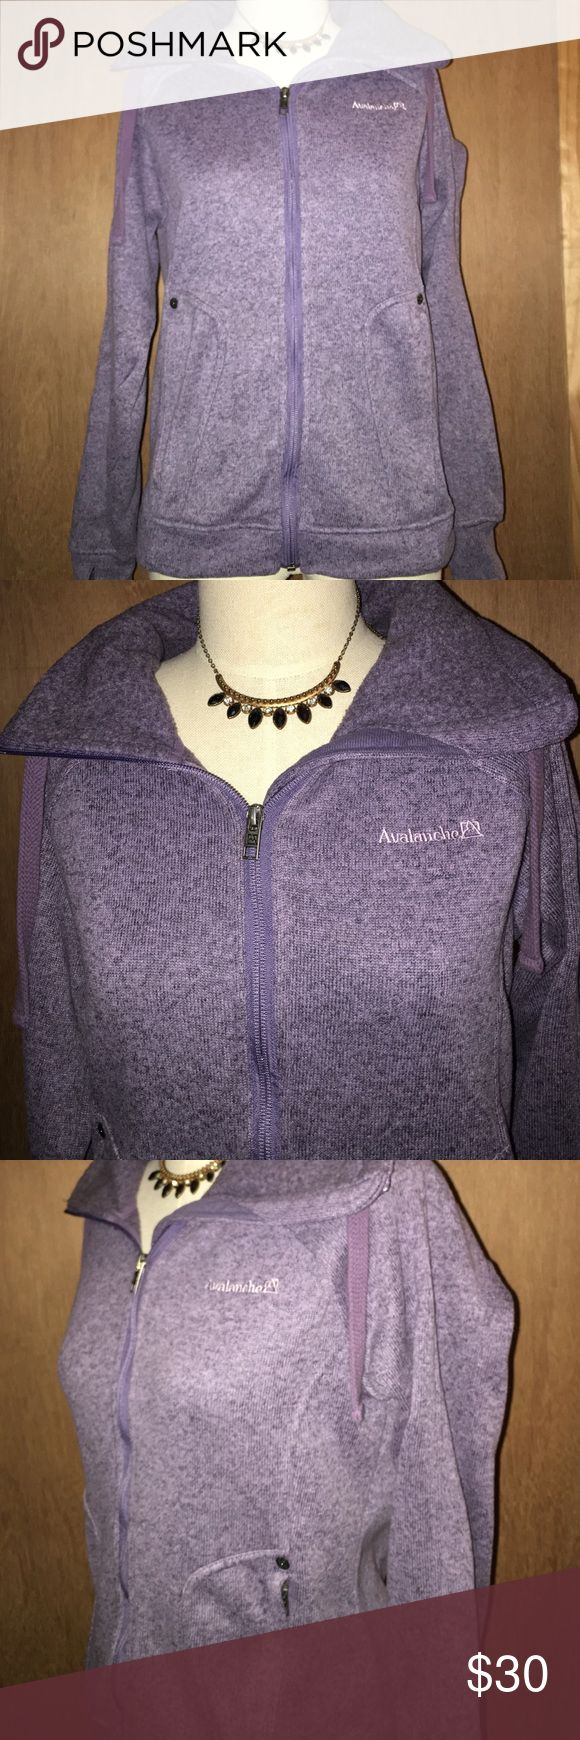 Avalanche Purple 💜 Zip Up Jacket Amazing condition!!! Perfect for the chilly weather. Pockets have zippers. 100% Polyester. Avalanche Jackets & Coats